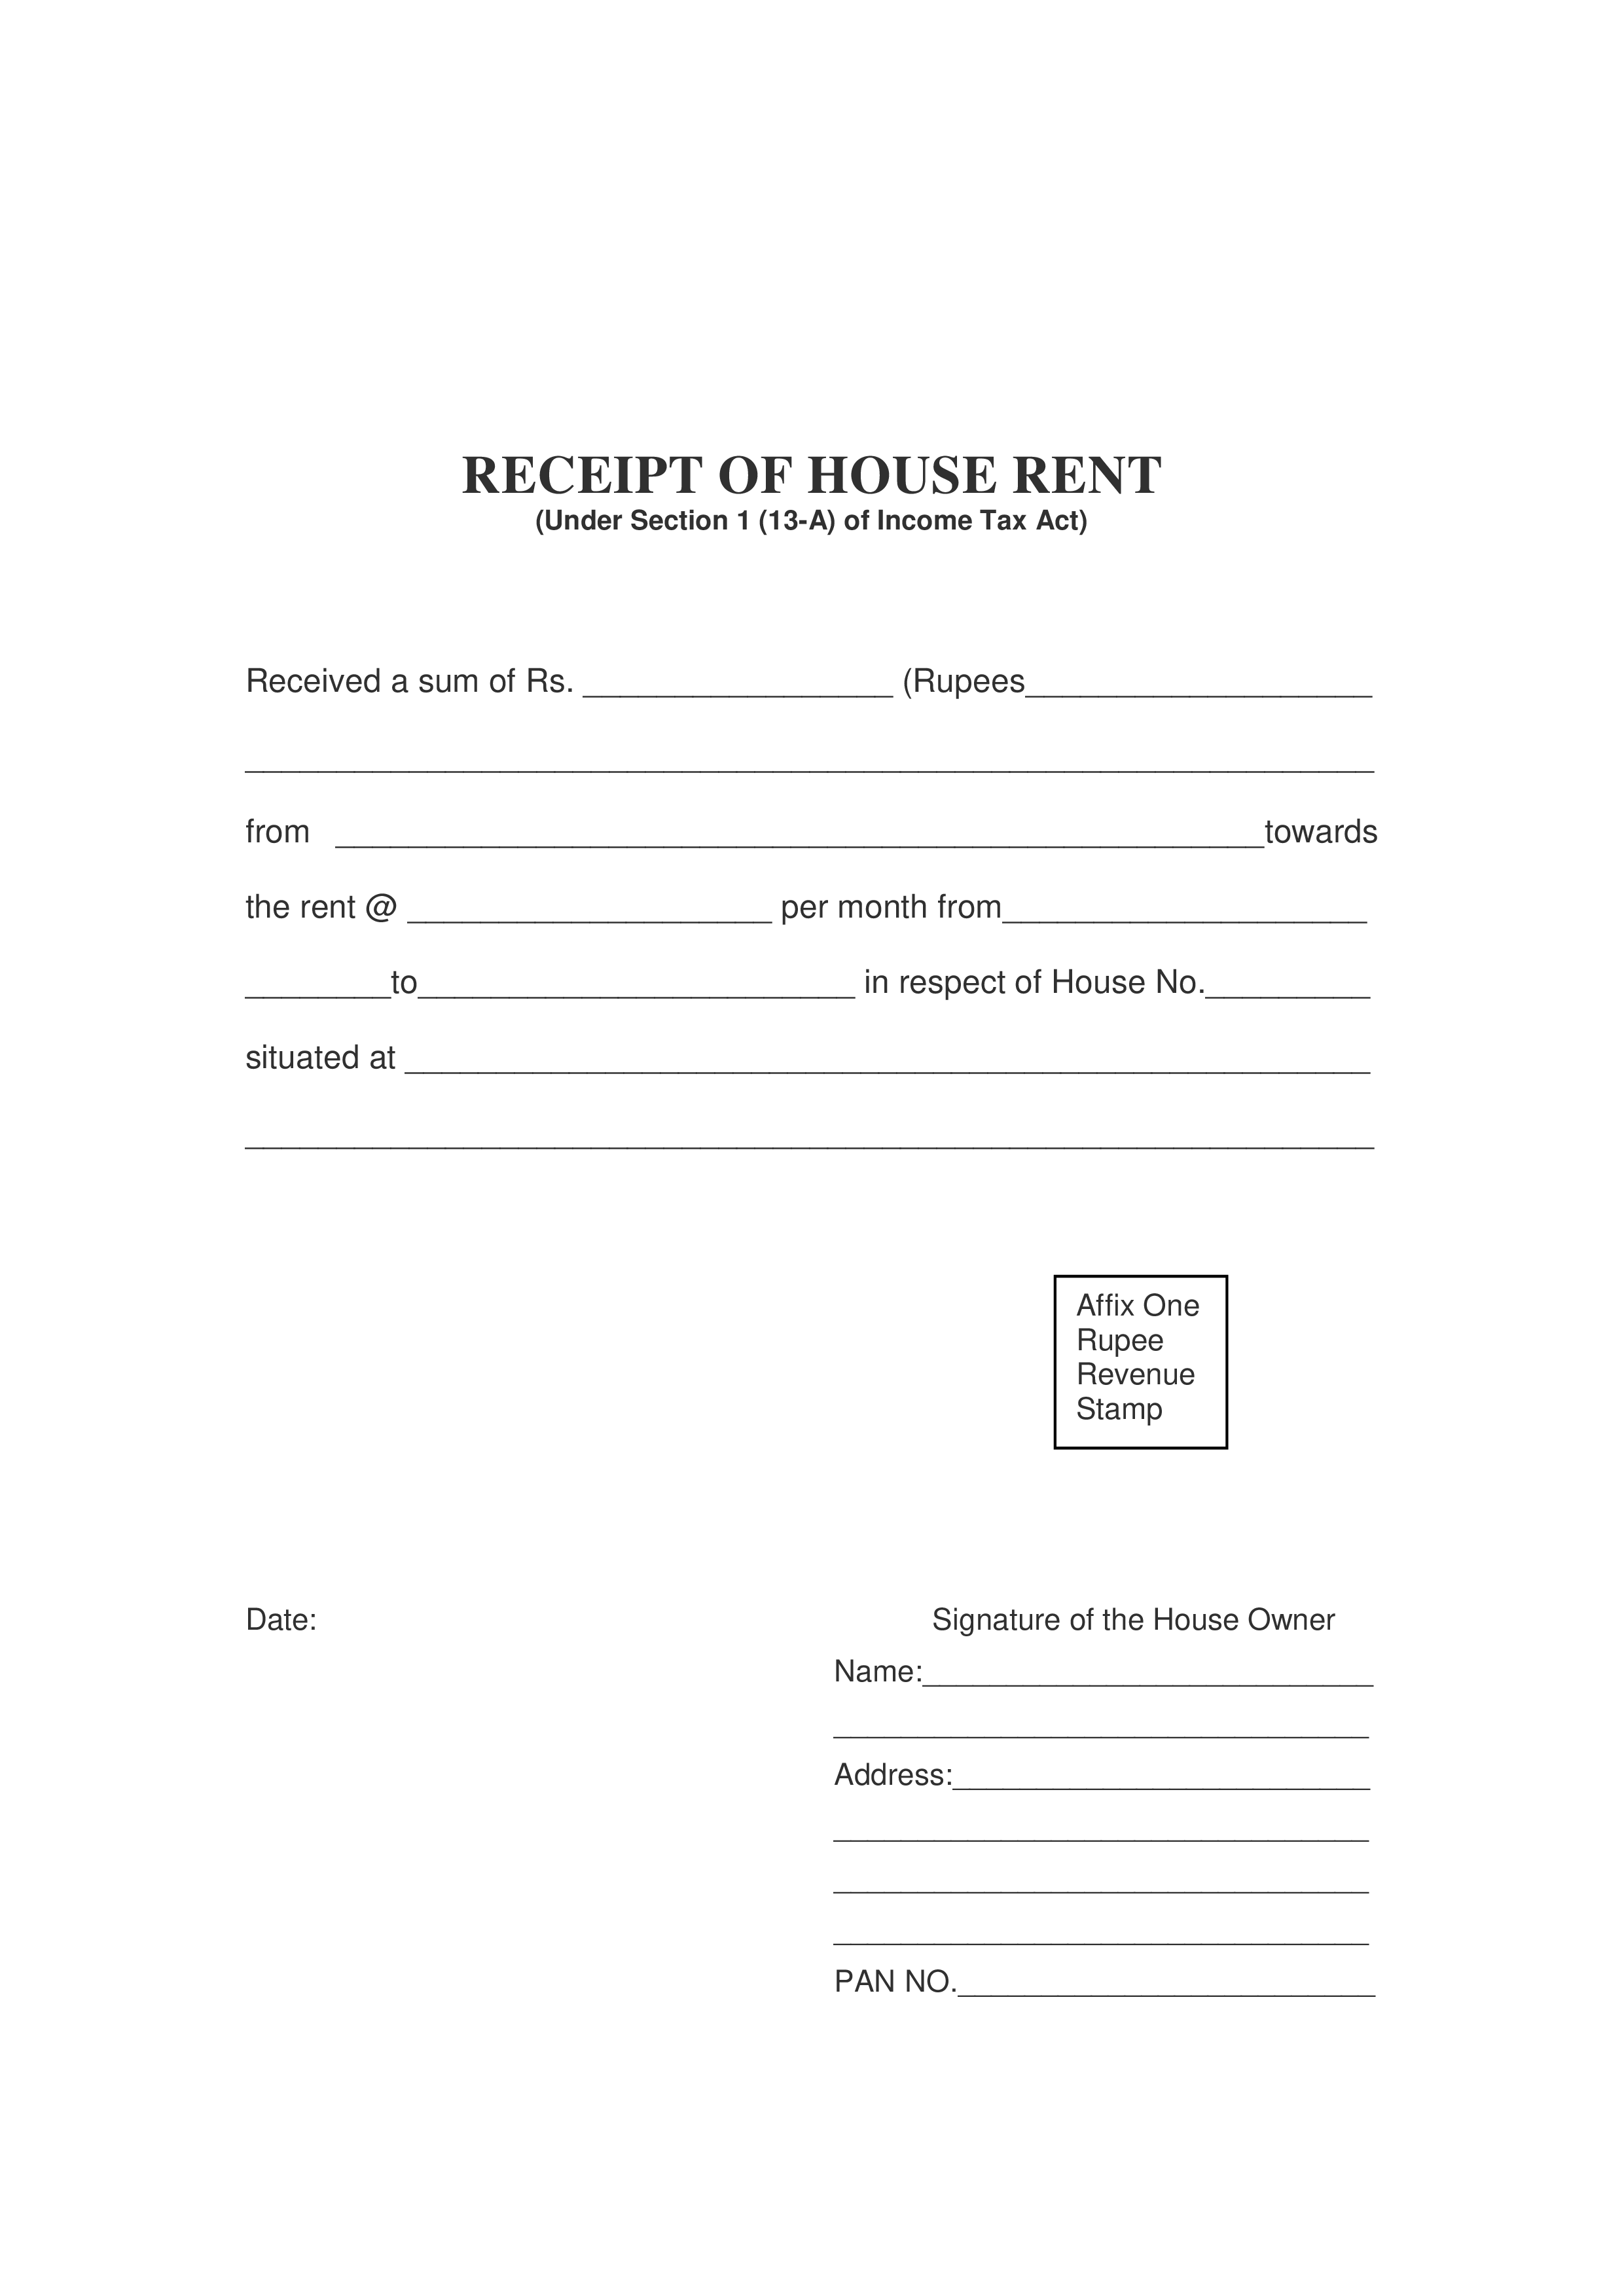 House Rent Receipt How To Create A House Rent Receipt Download This House Rent Receipt Template Now Receipt Template Invoice Template Invoice Template Word